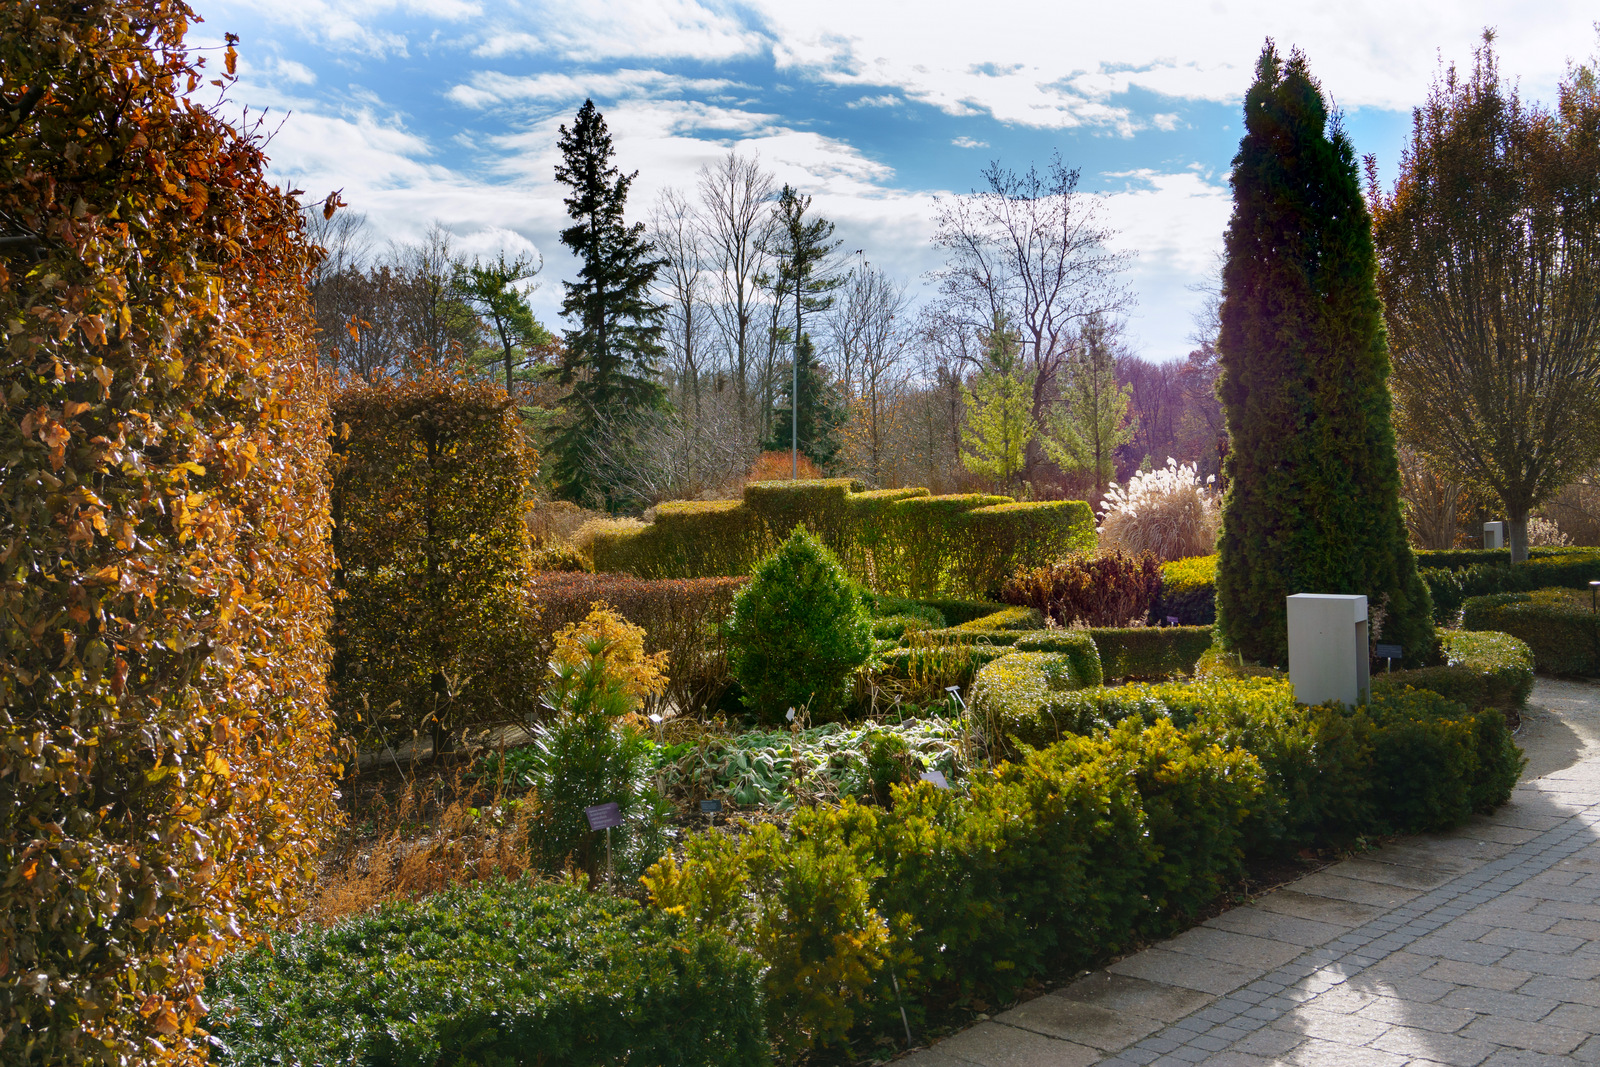 A Late November Day at Toronto Botanical Garden and Edwards Gardens ...